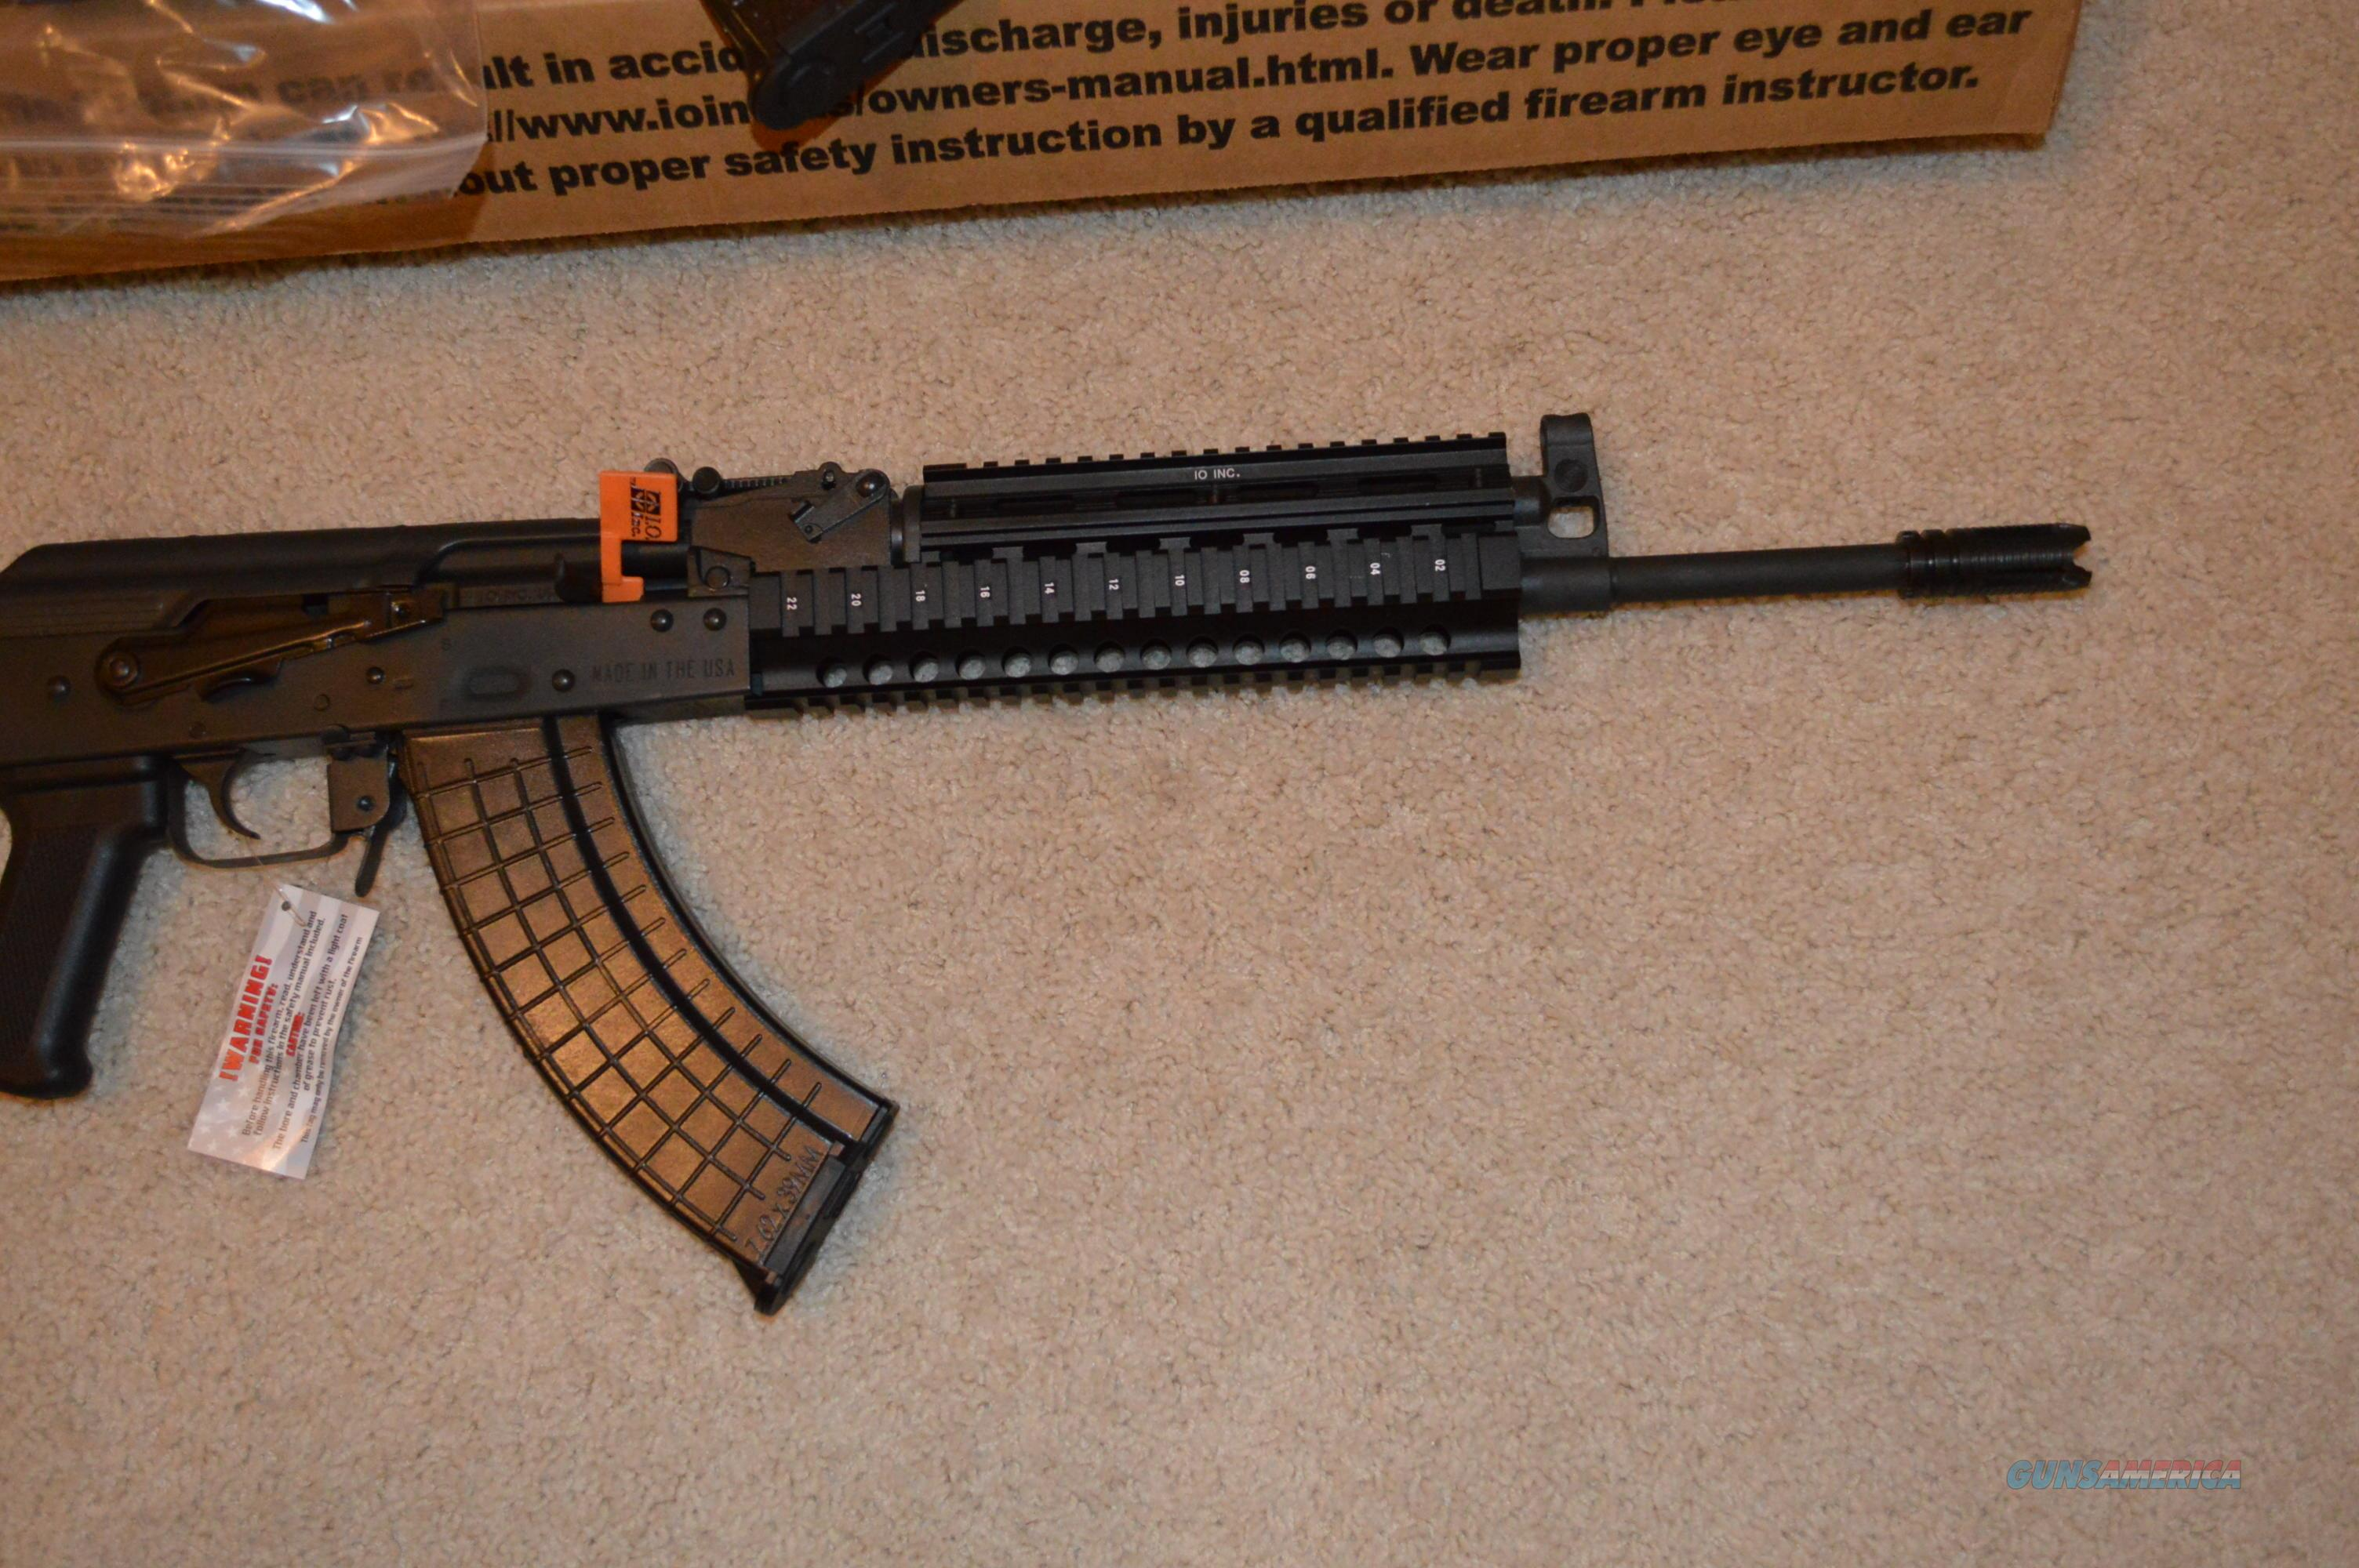 Ak ak 47 for sale by owner - 11609662 Jpg